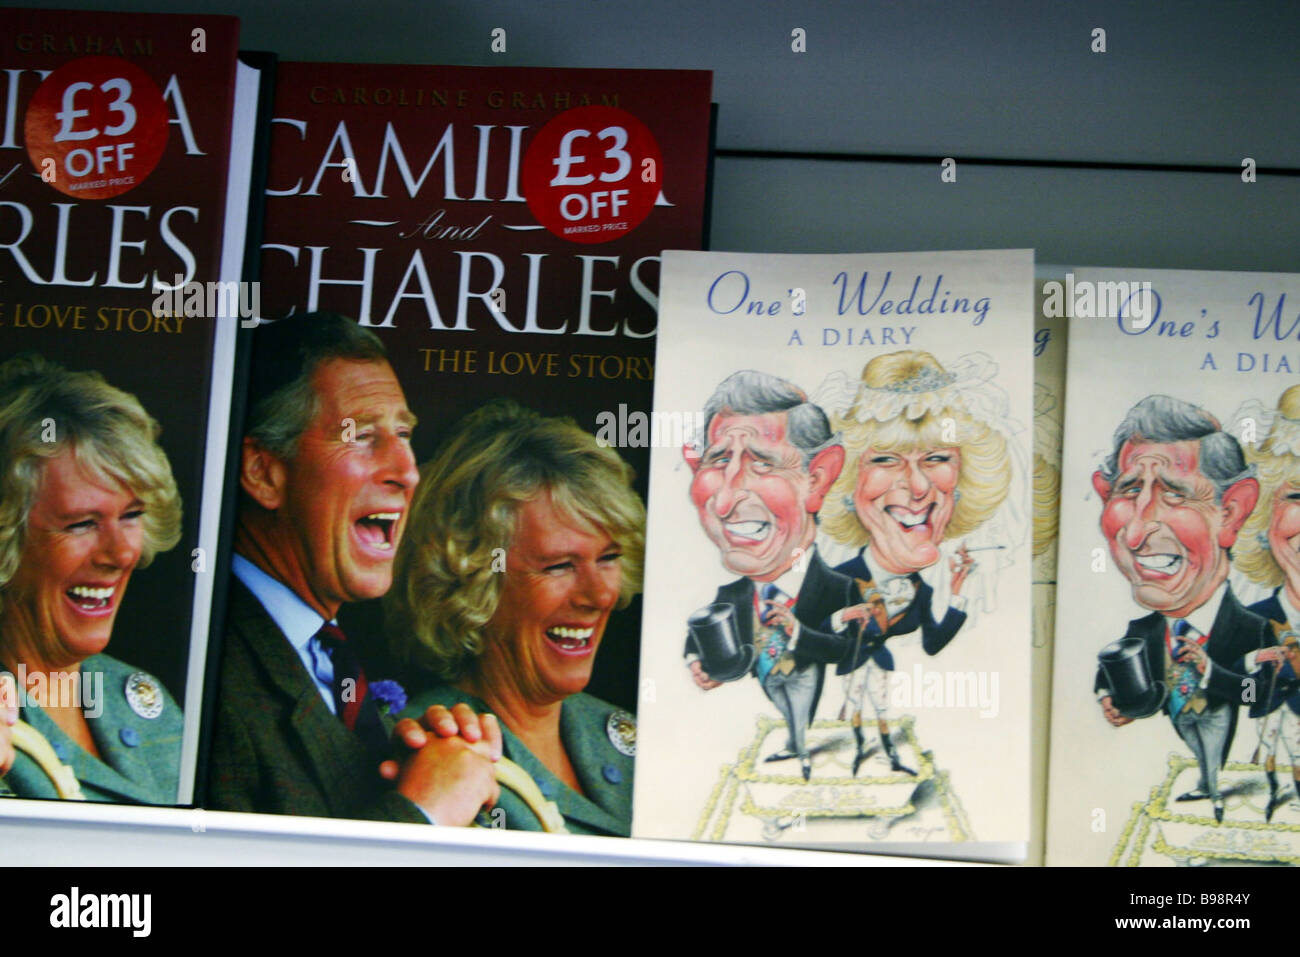 Books about the love story of Prince Charles and Camilla Parker Bowles - Stock Image